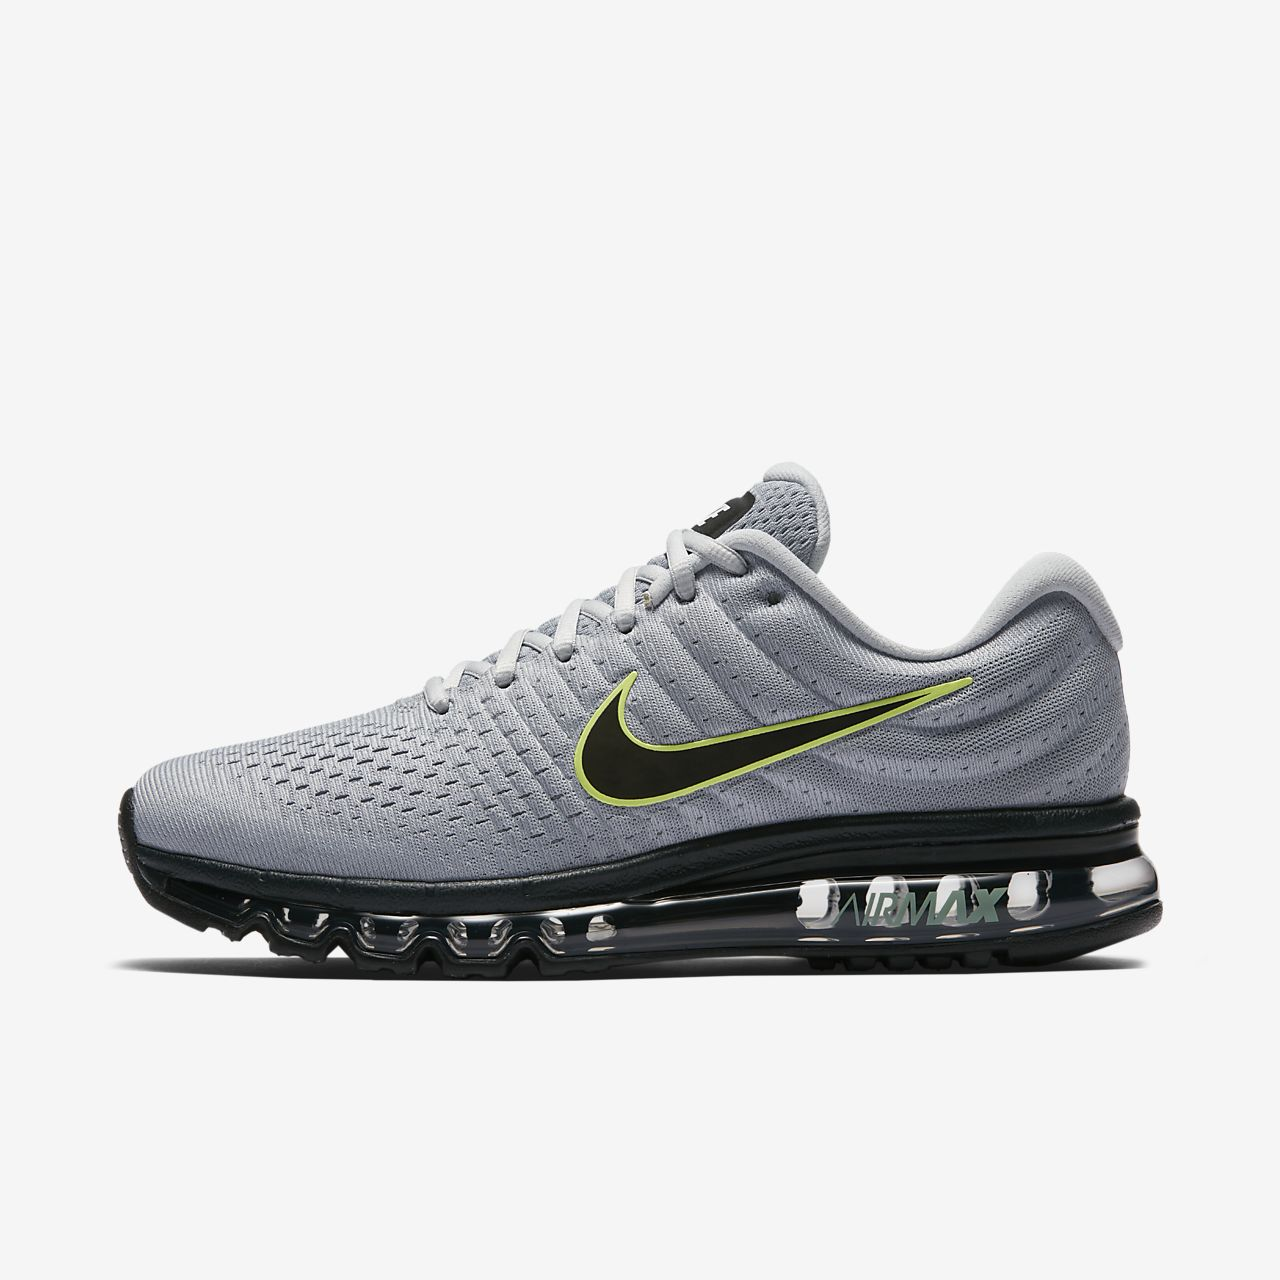 87a7470b55 Nike Air Max 2017 Men's Shoe. Nike.com ZA